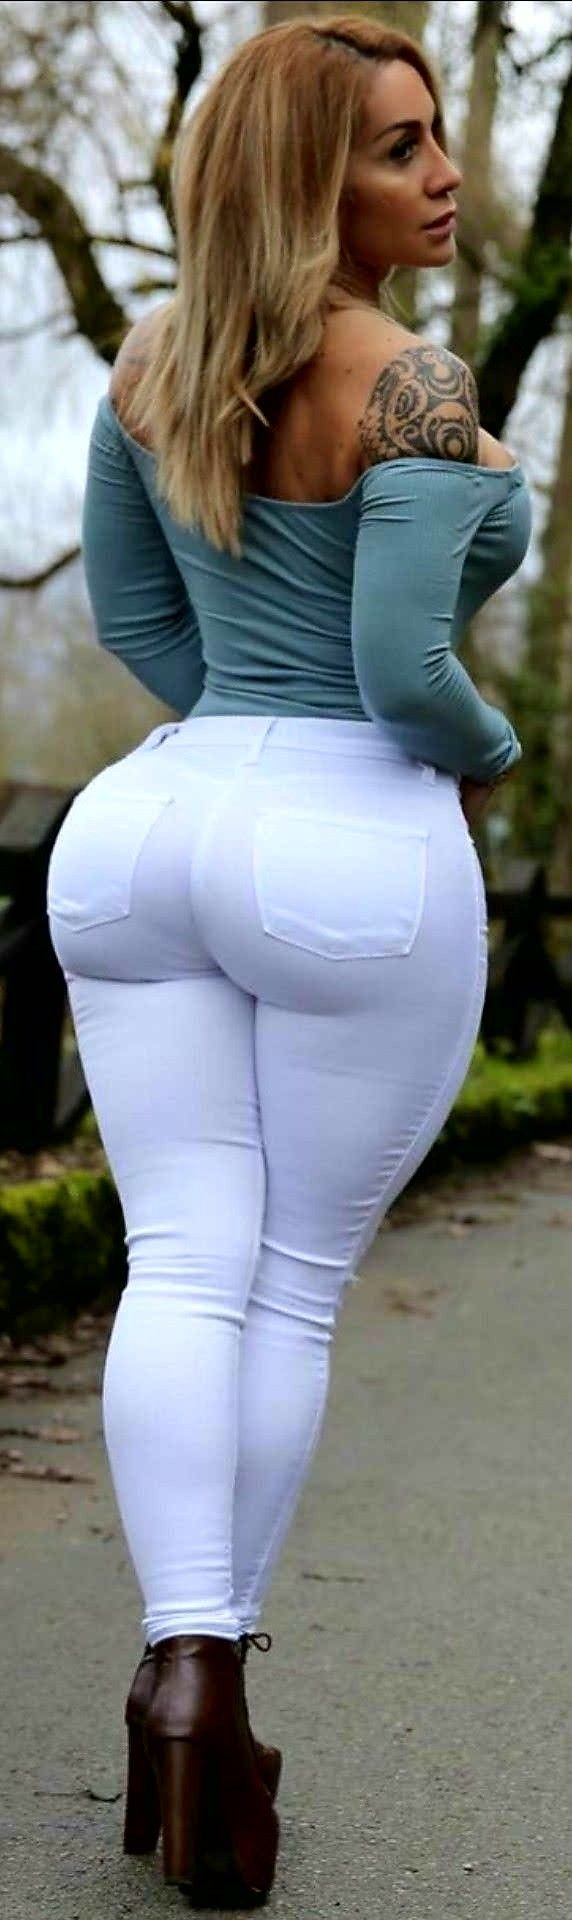 hot-milf-in-white-jeans